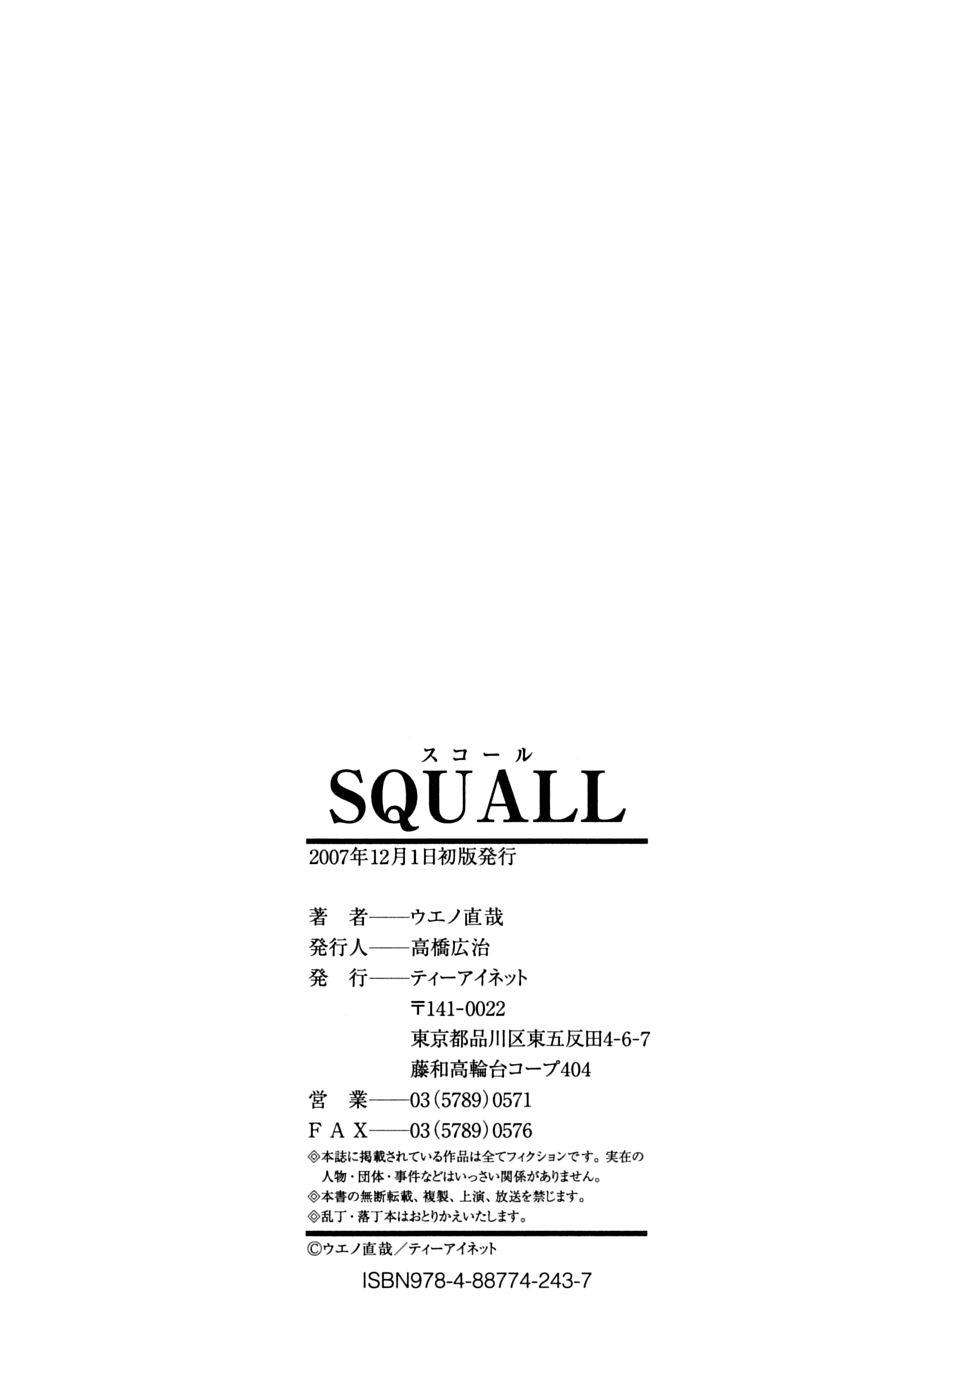 Squall 203